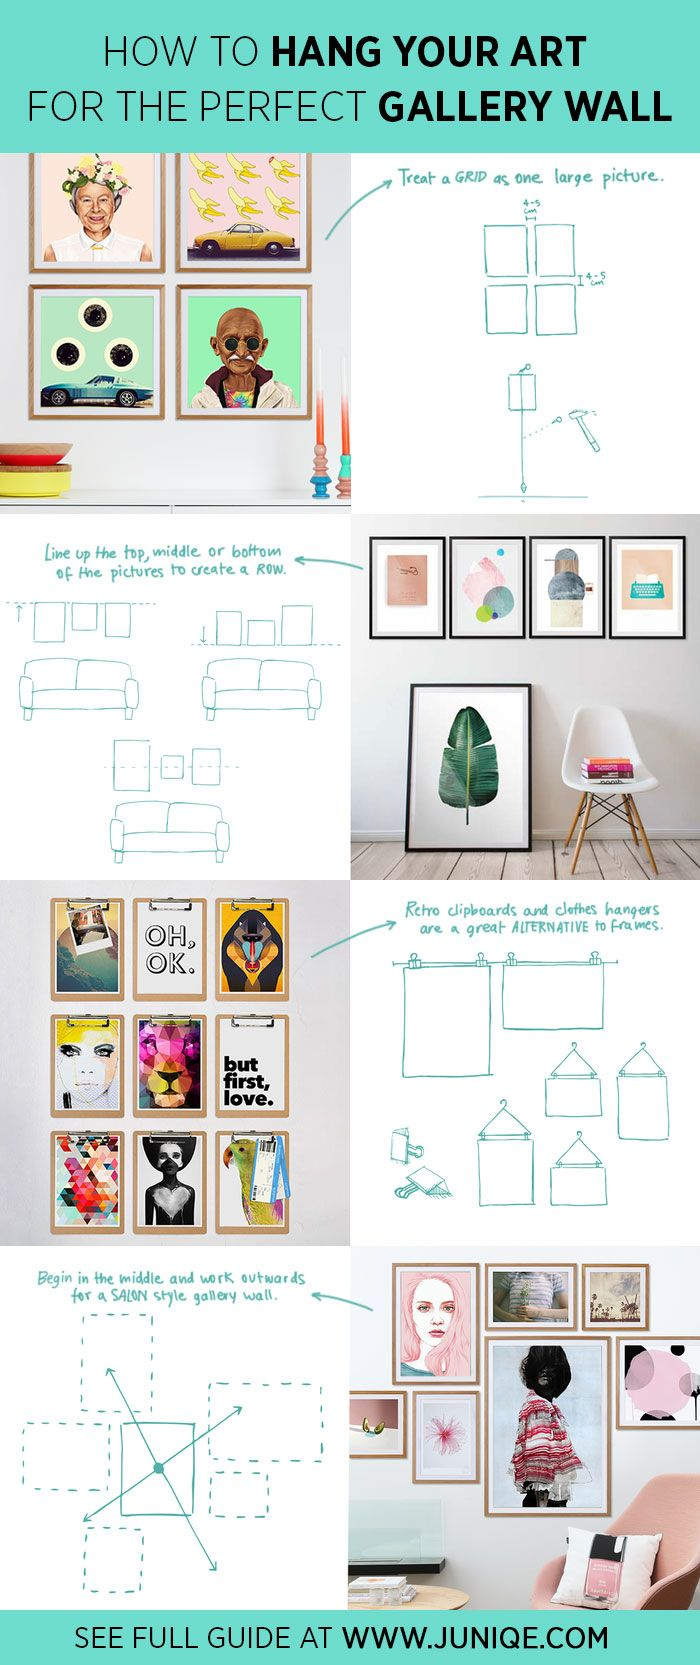 How to Hang Your Art for The Perfect Gallery Wall. Gallery walls are one of the most important part for your home decor scheme. The tips above are just a jumping-off points to inspire you not only how to arrange arts into brings cherished moments but also reflects your personalities. Be Unique! See full guide at www.juniqe.com